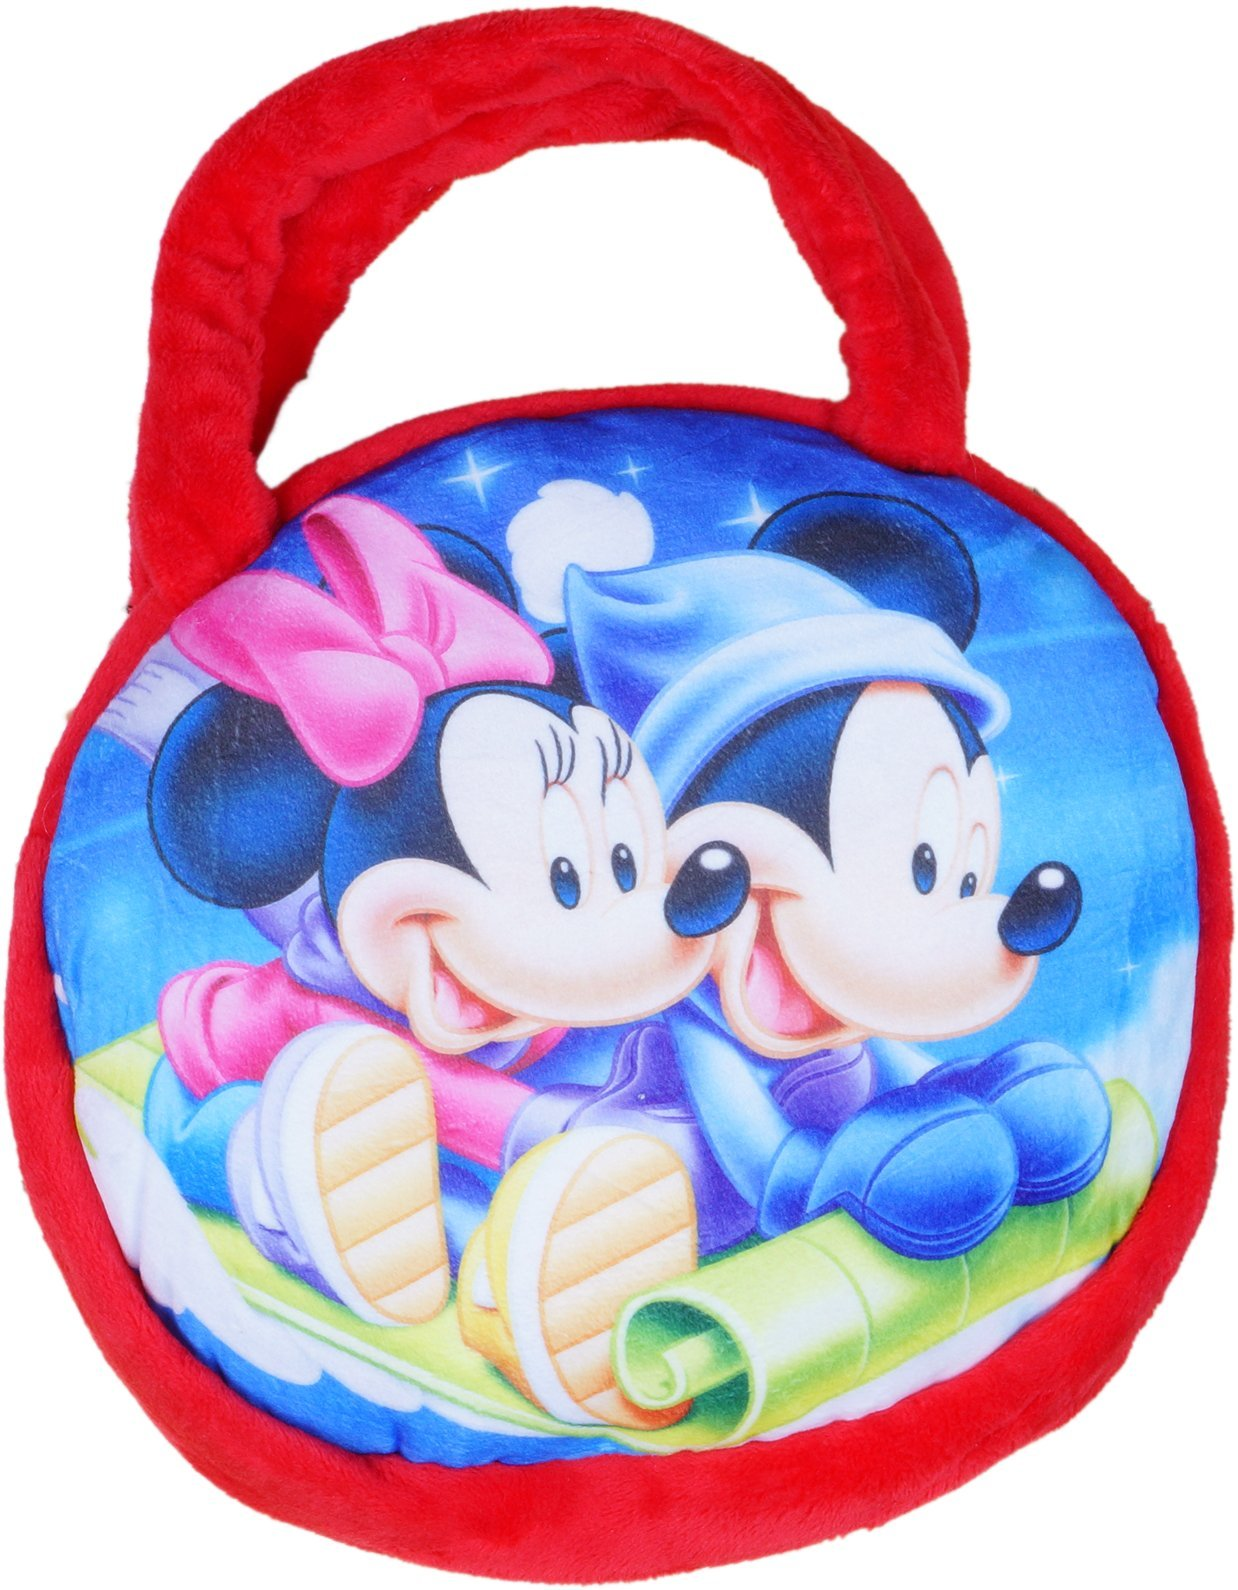 Soft Plush Handbag Purse for Kid Toddler